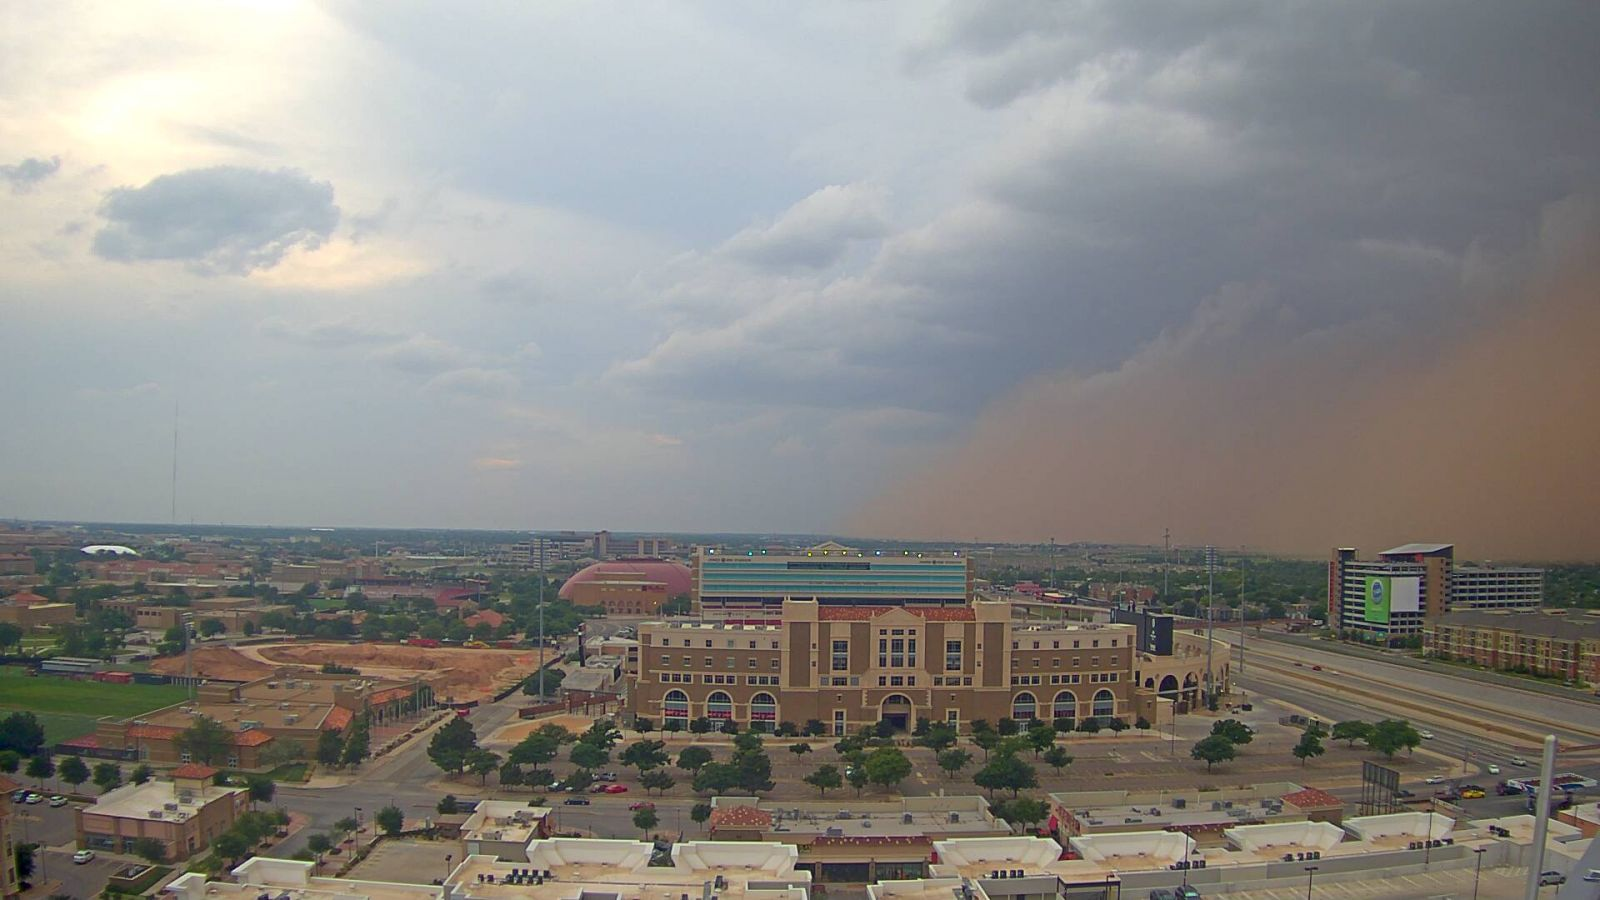 NWS Lubbock TX Severe Storms May 29 2016 1600x900